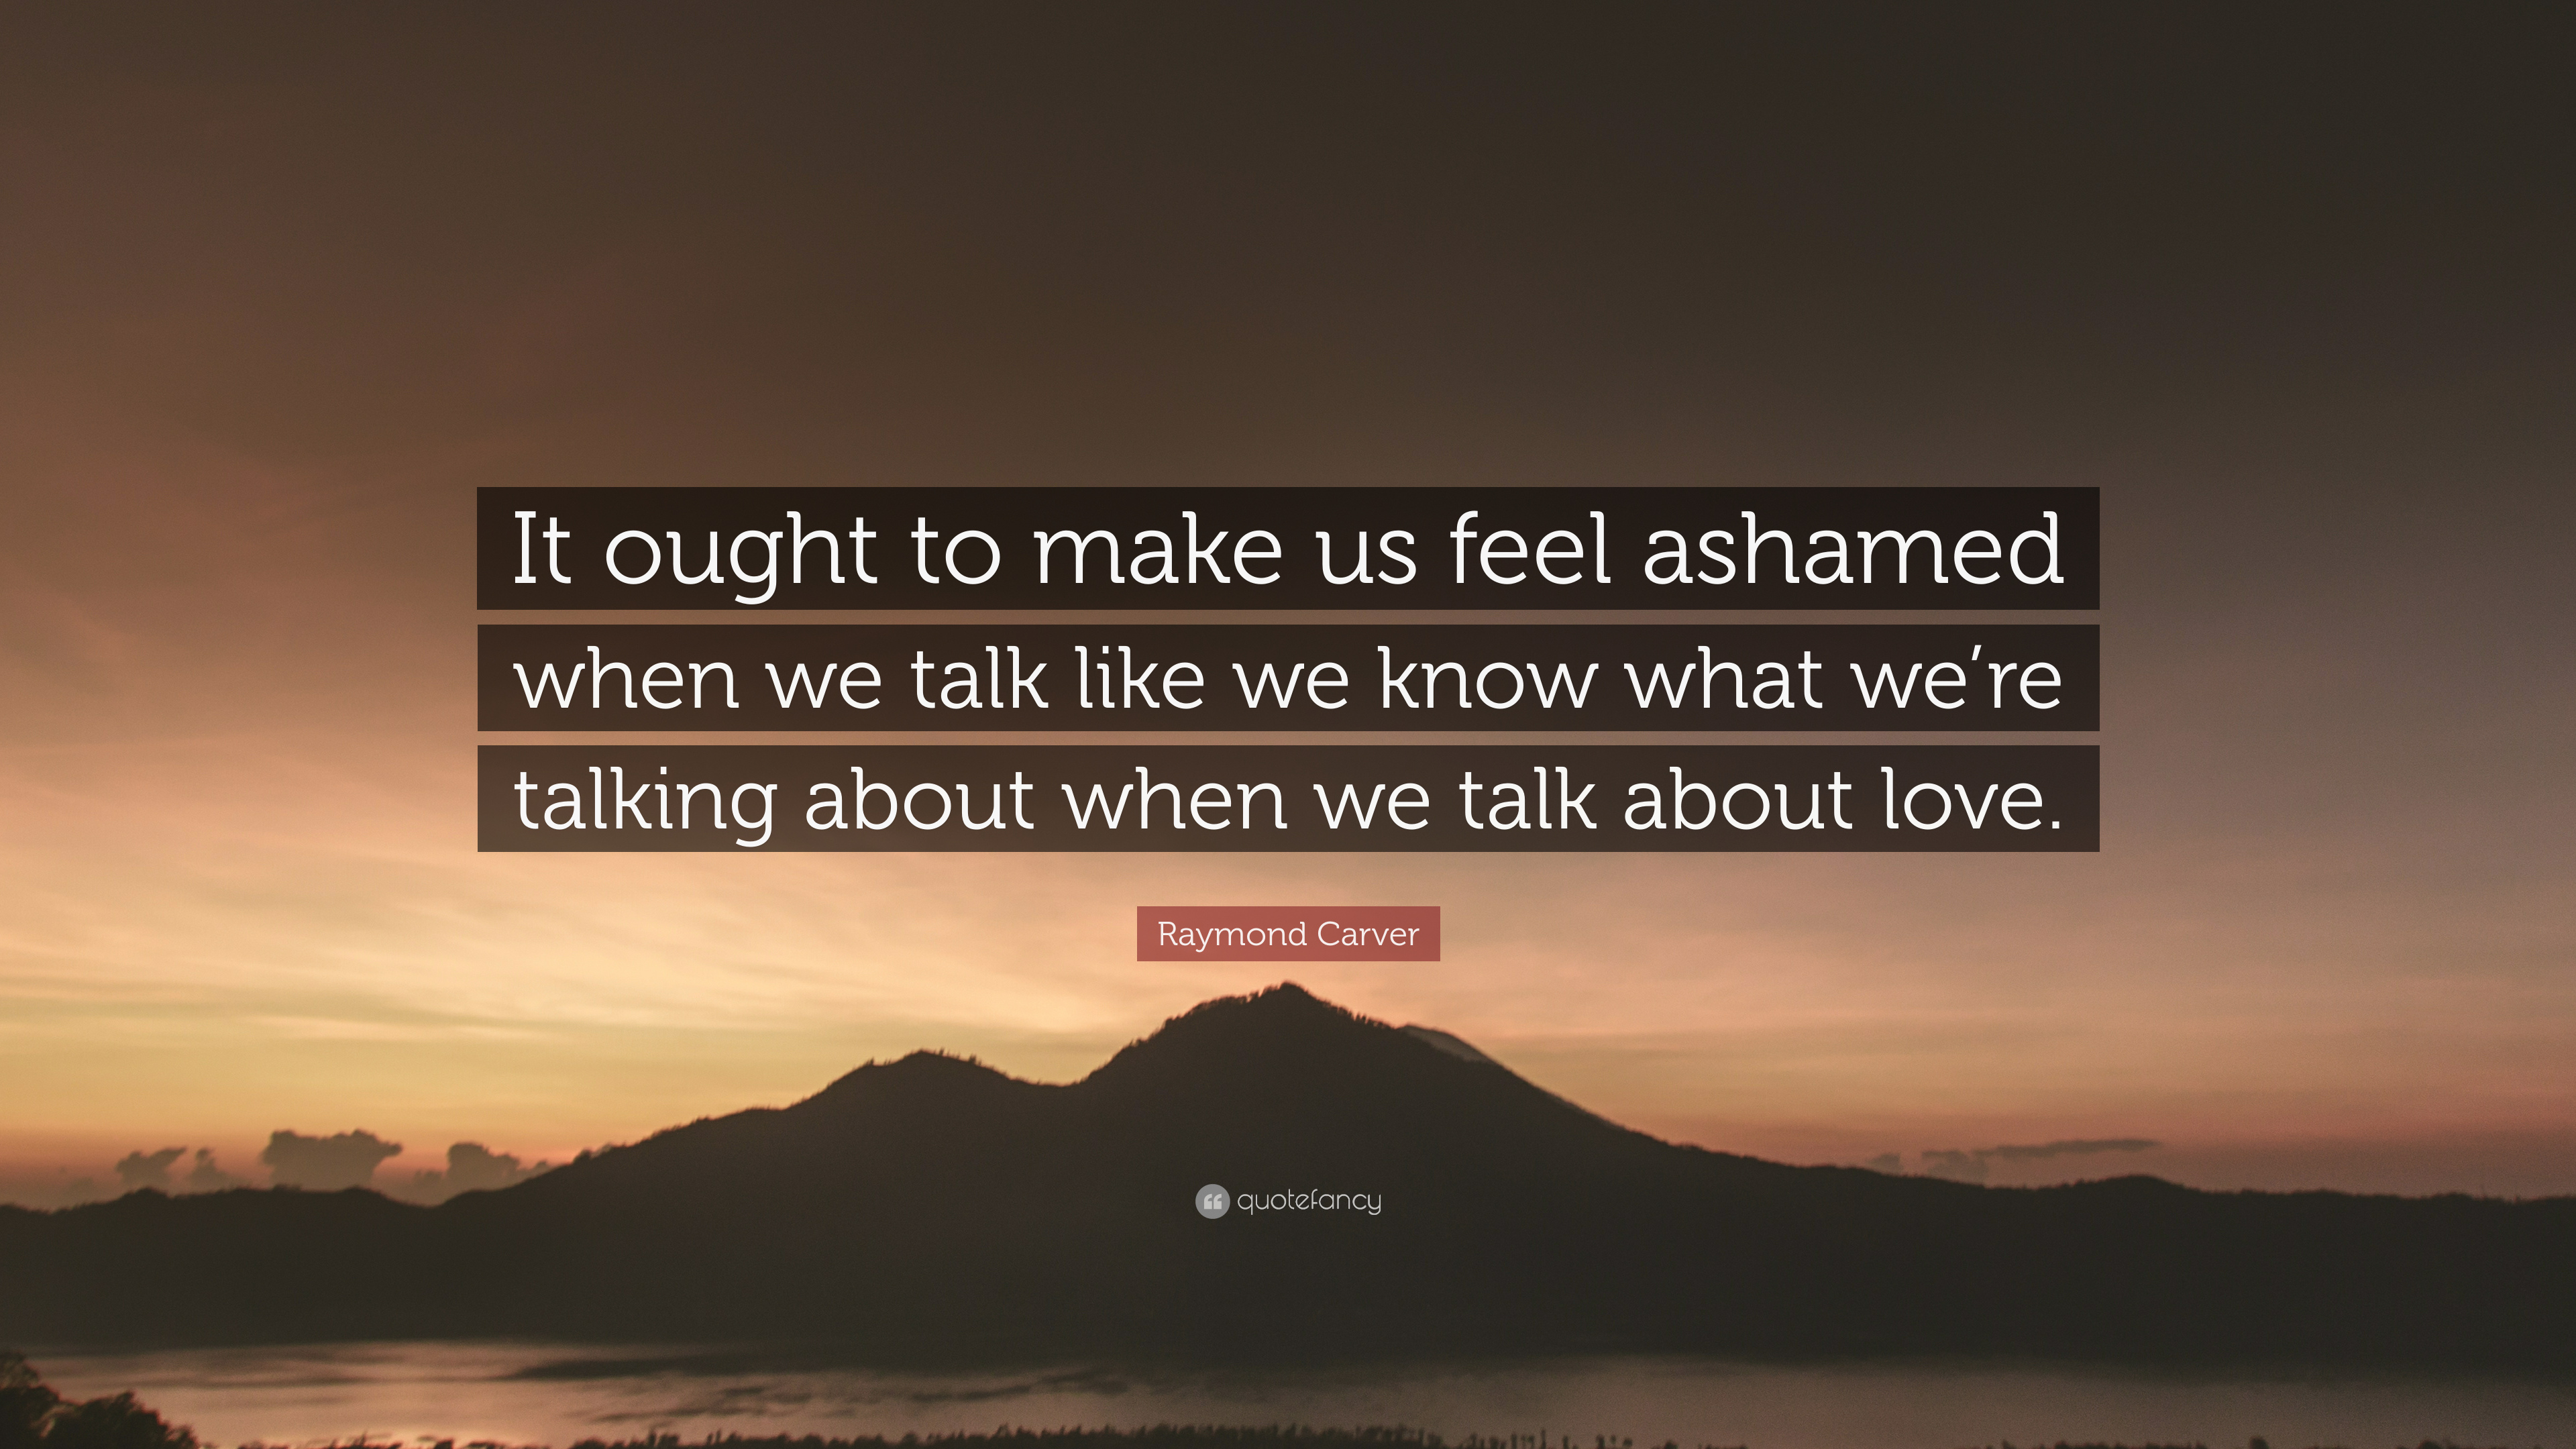 Raymond Carver Quote It Ought To Make Us Feel Ashamed When We Talk